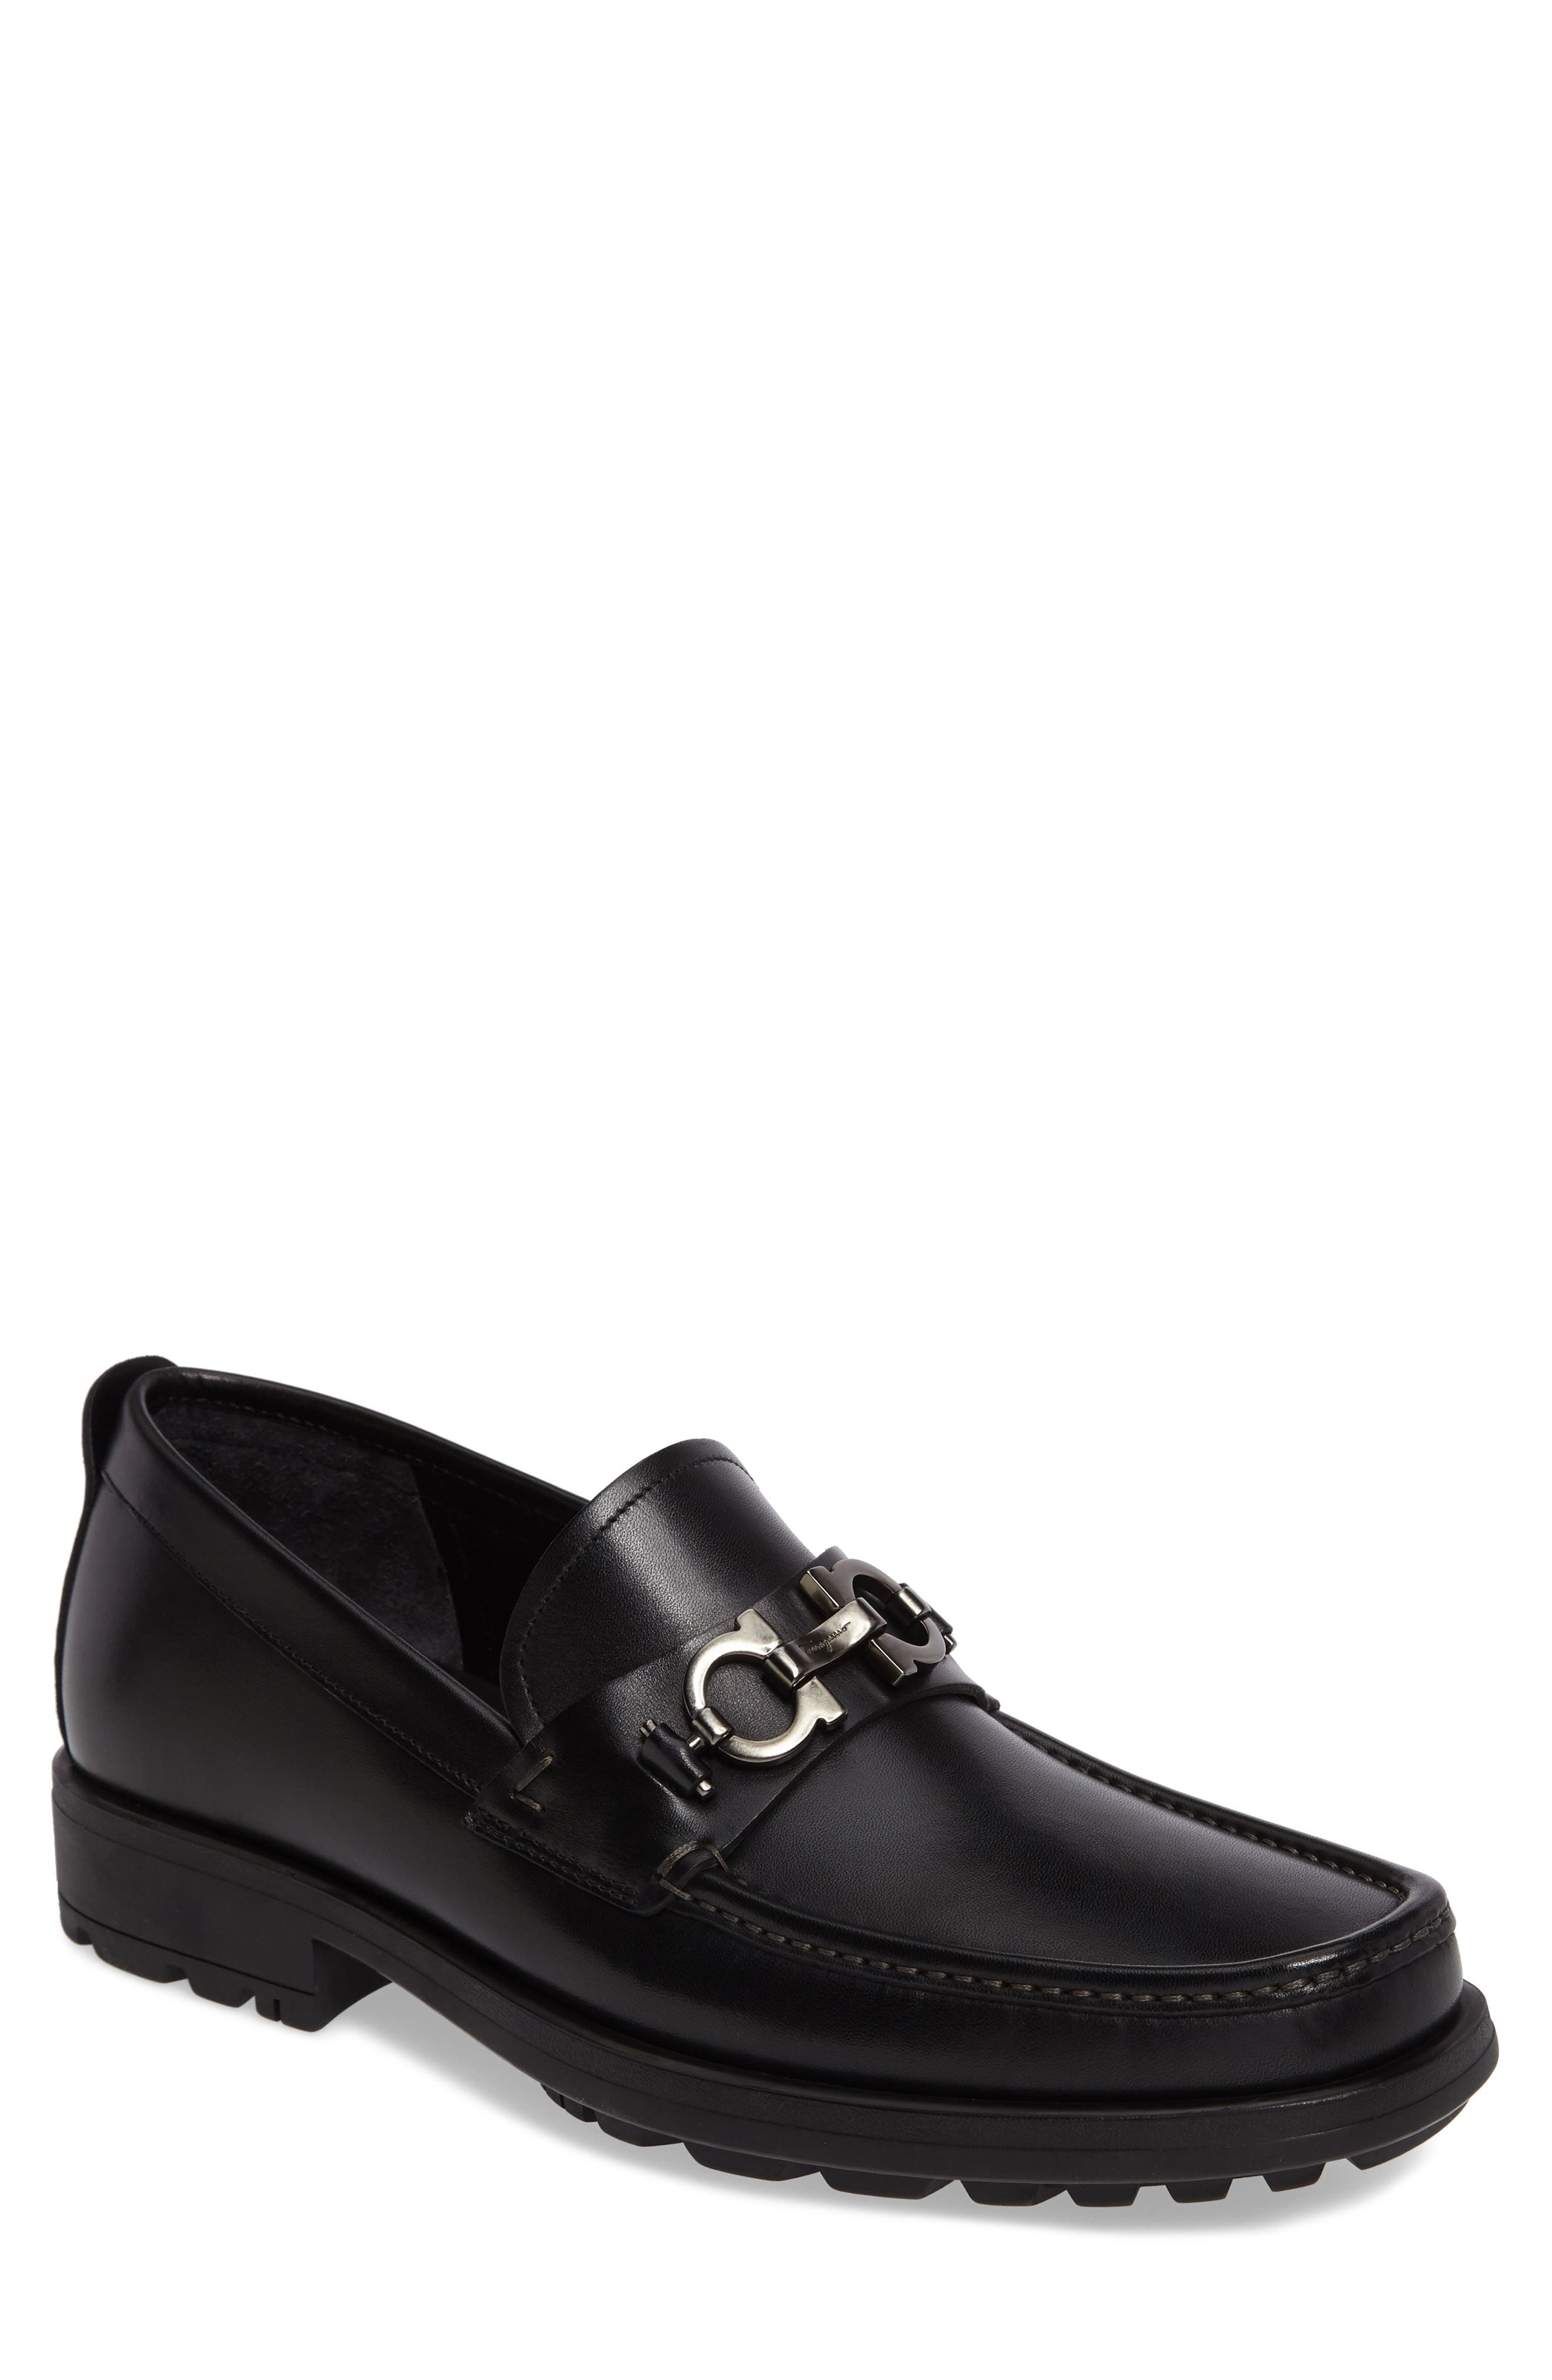 David Bit Loafer,                             Main thumbnail 1, color,                             BLACK LEATHER